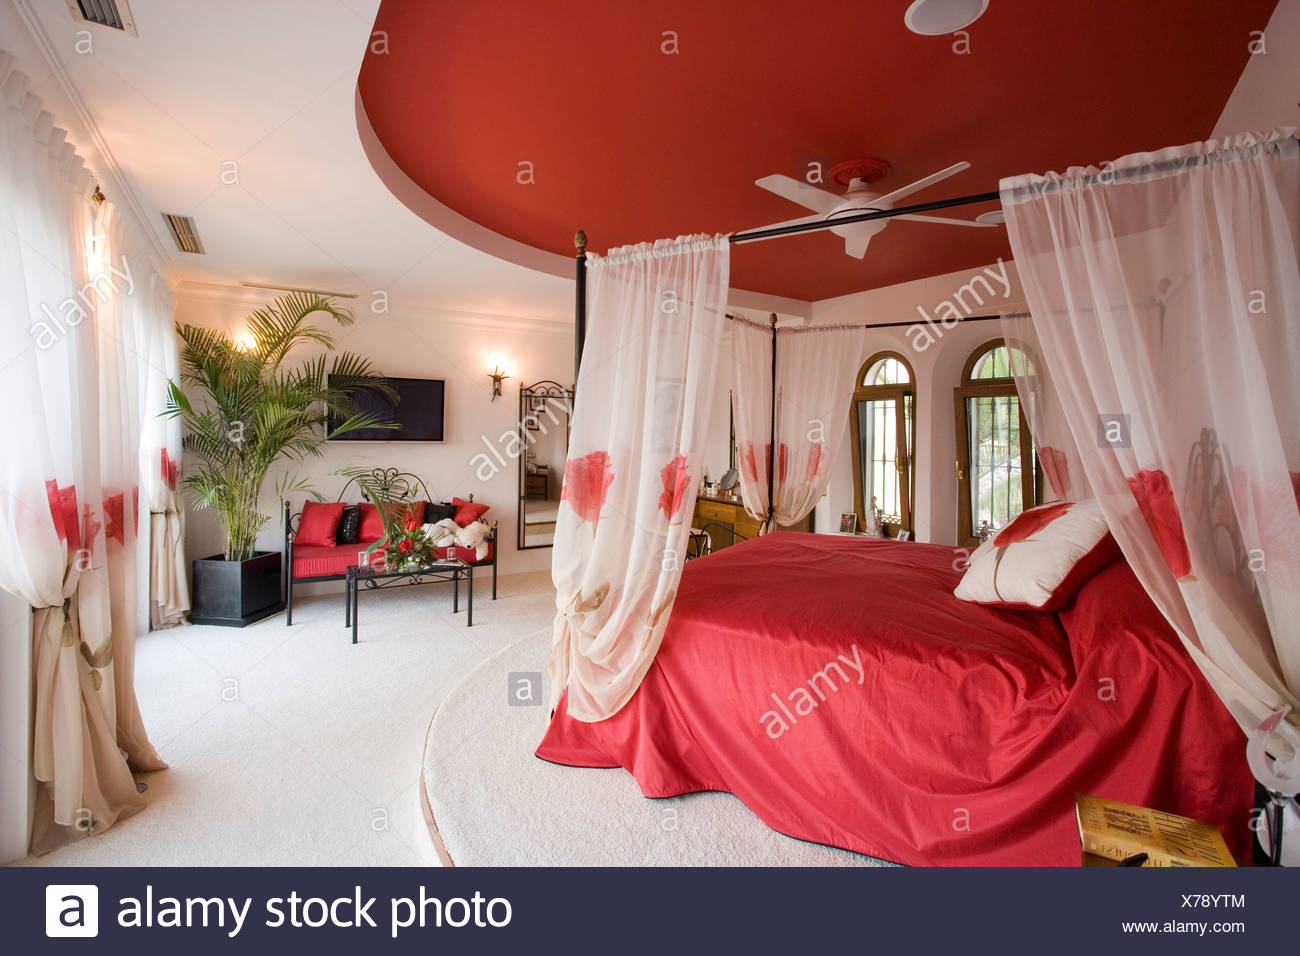 Red Ceiling Above Bed With White Voile Drapes And Red Bedlinen In Bedroom With White Carpet Stock Photo Alamy